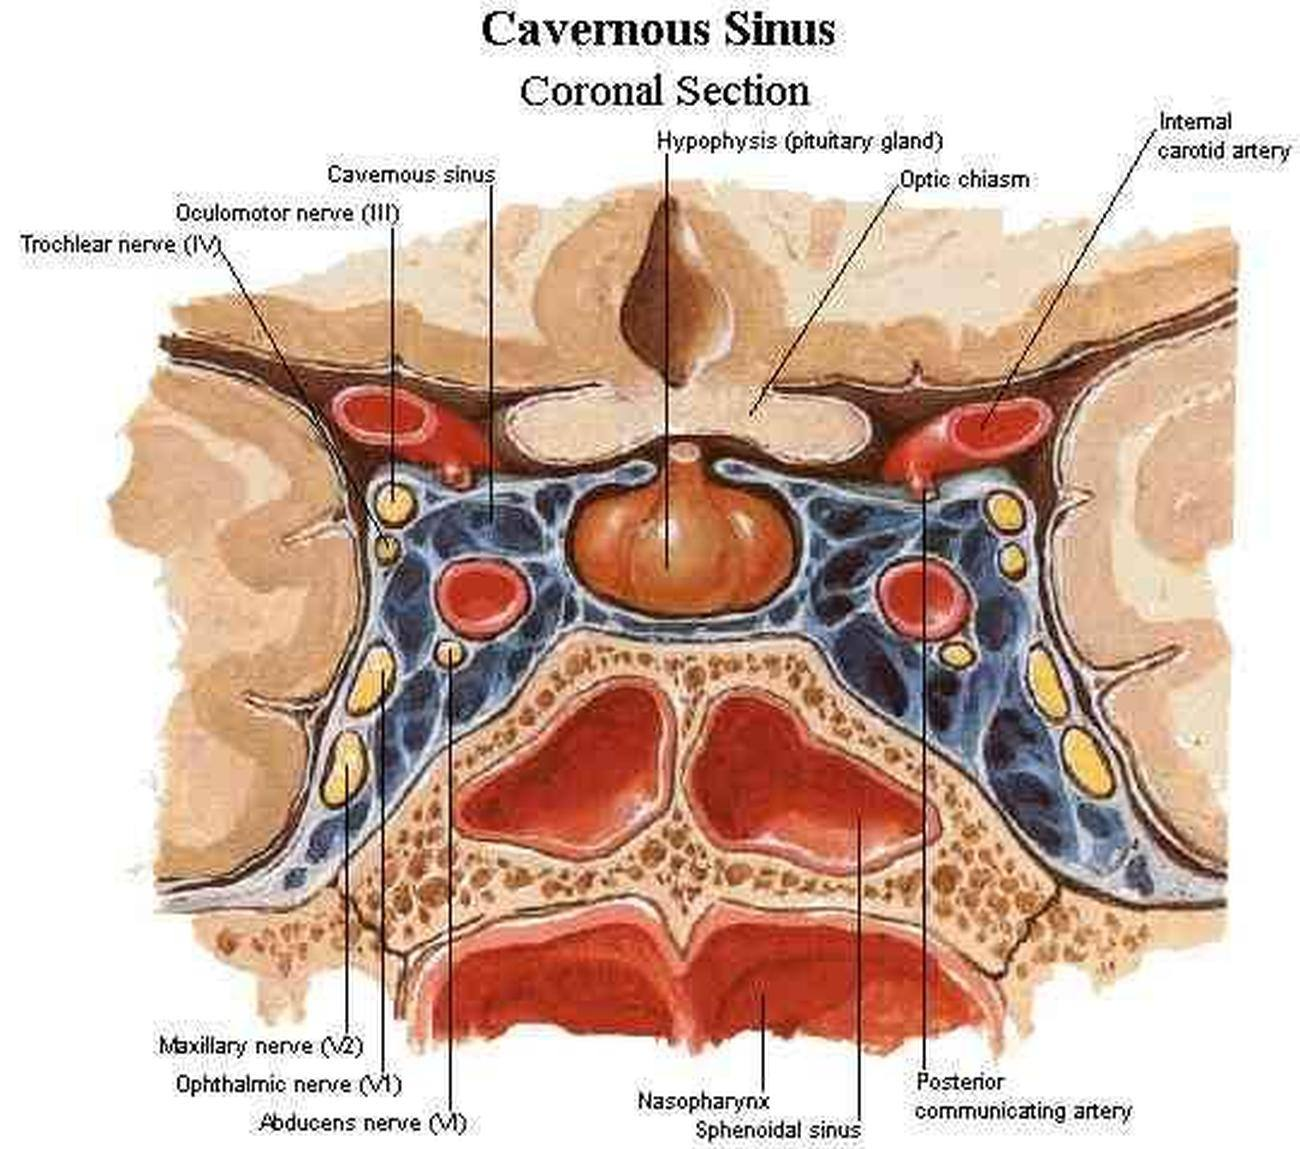 Pictures of cavernous sinus 227